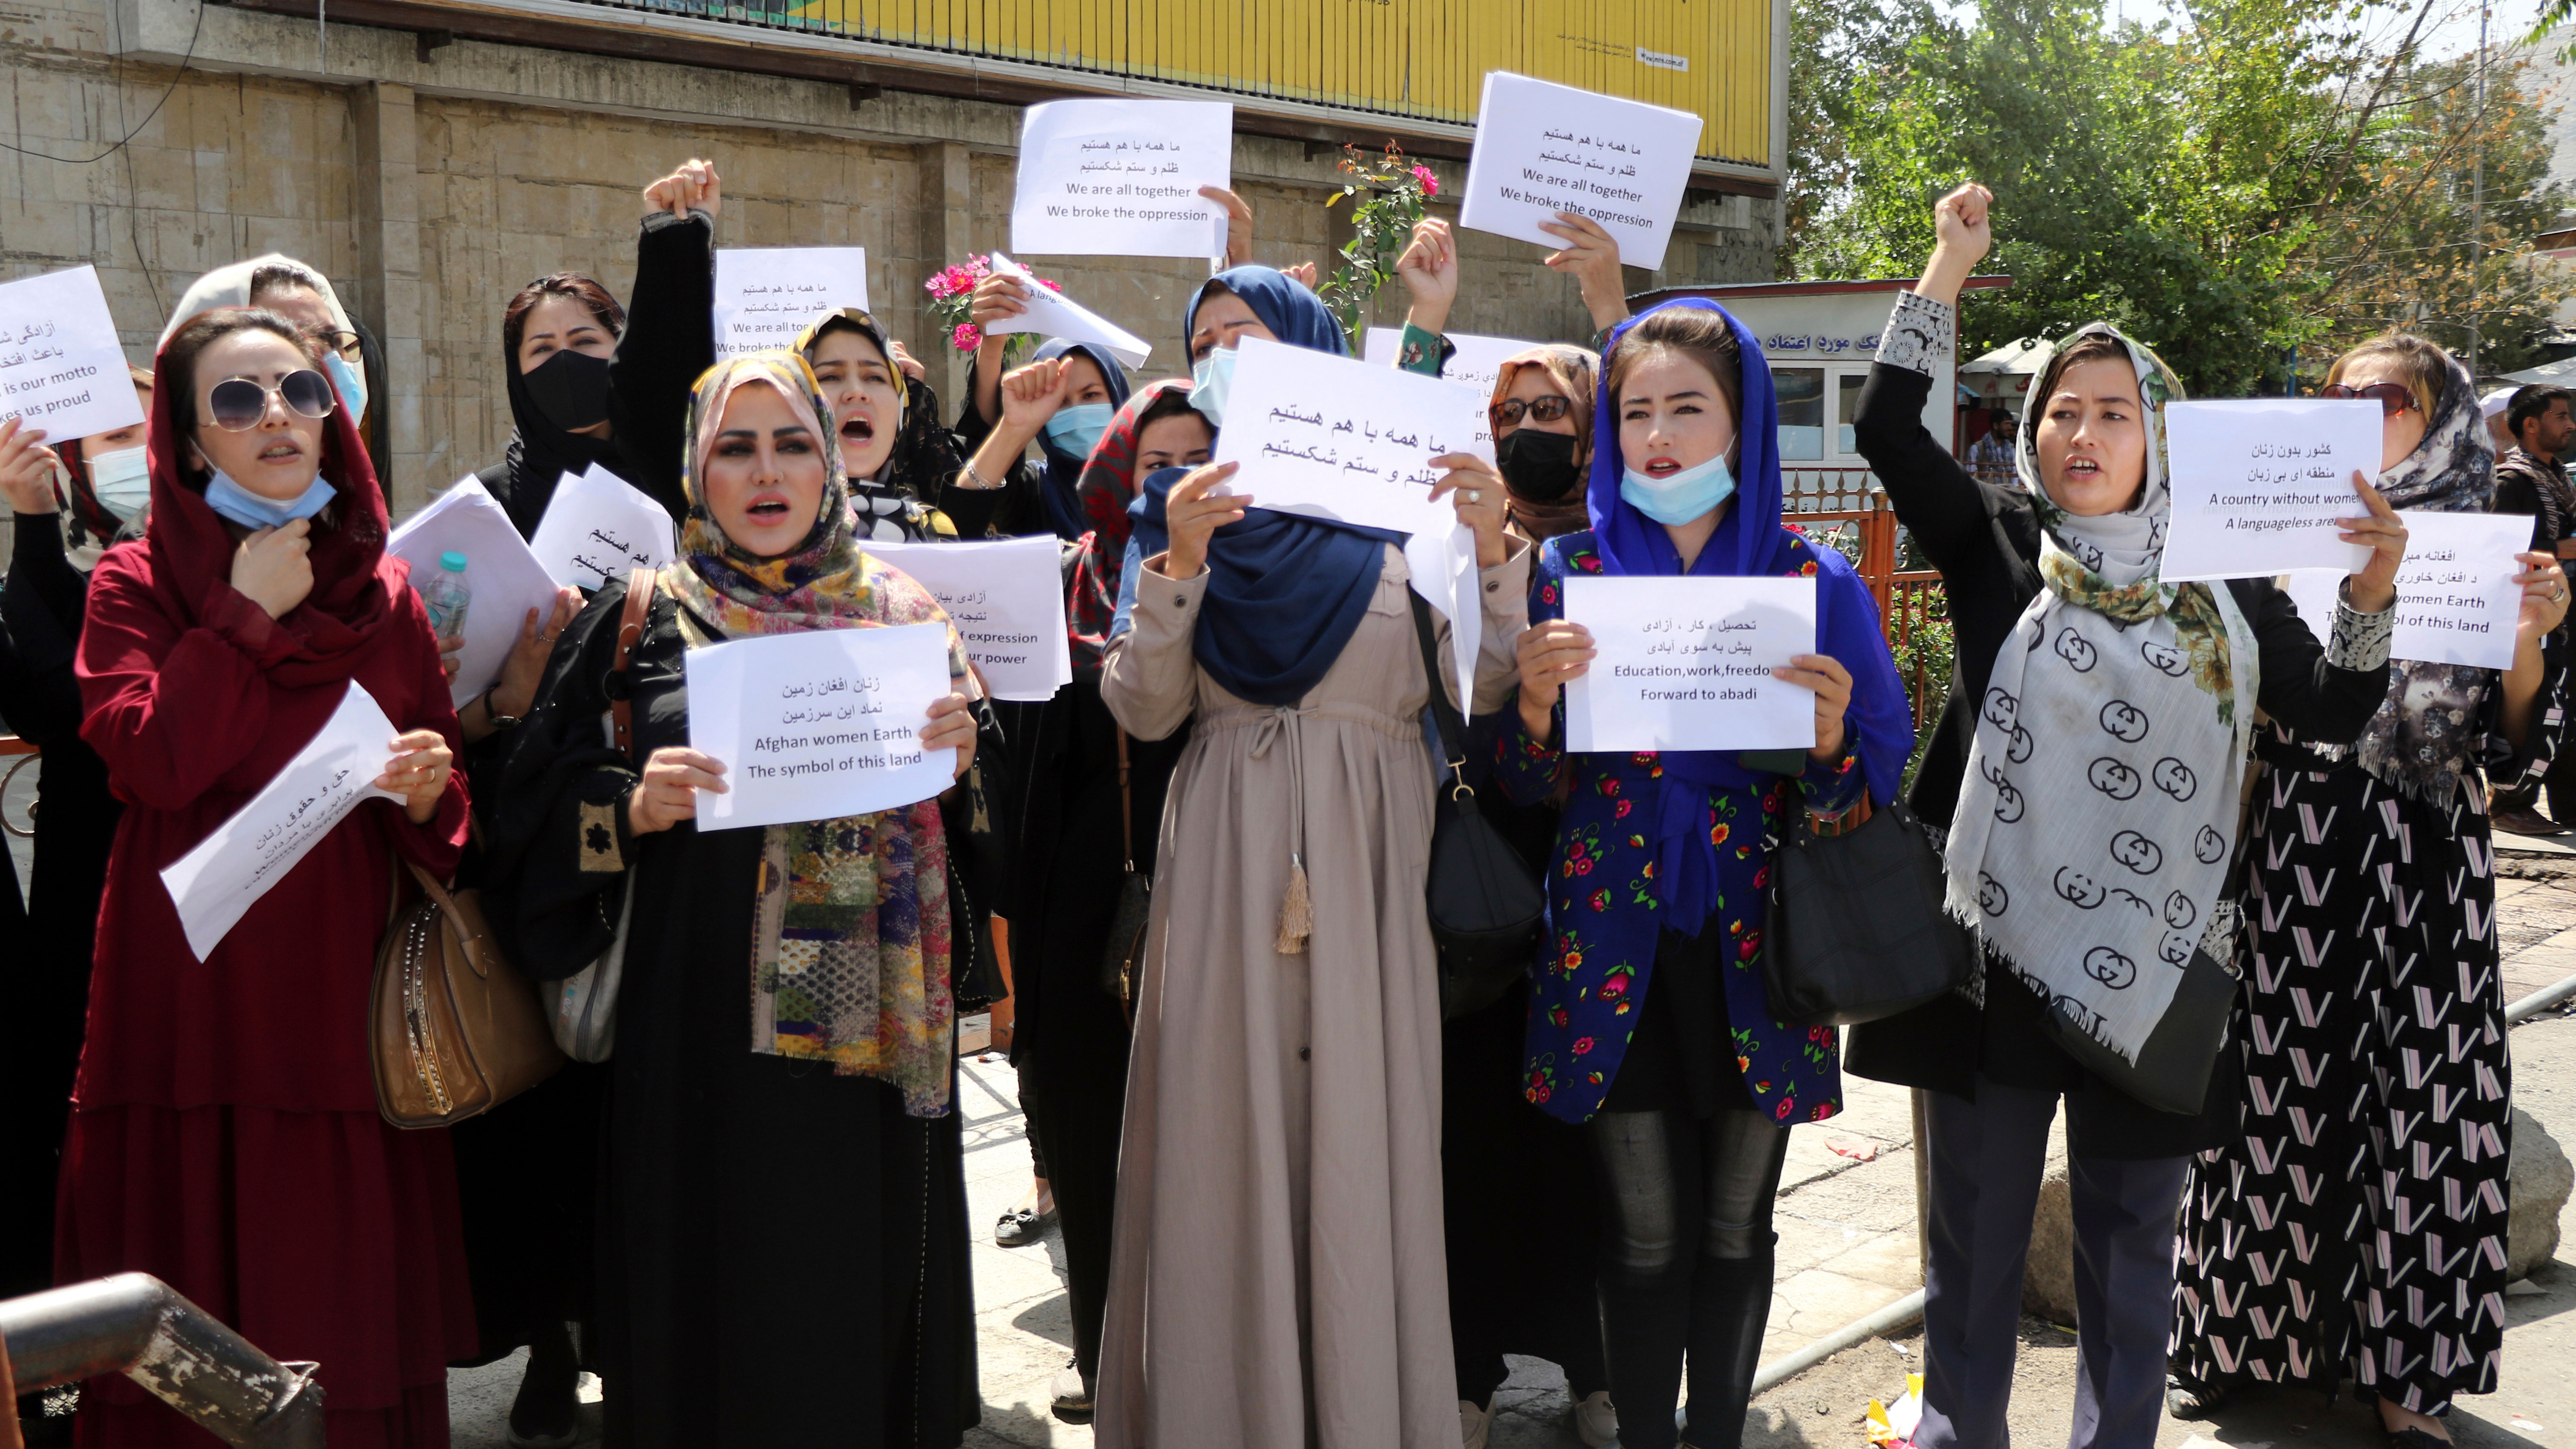 Women gather to demand their rights under the Taliban rule during a protest in Kabul, Afghanistan.